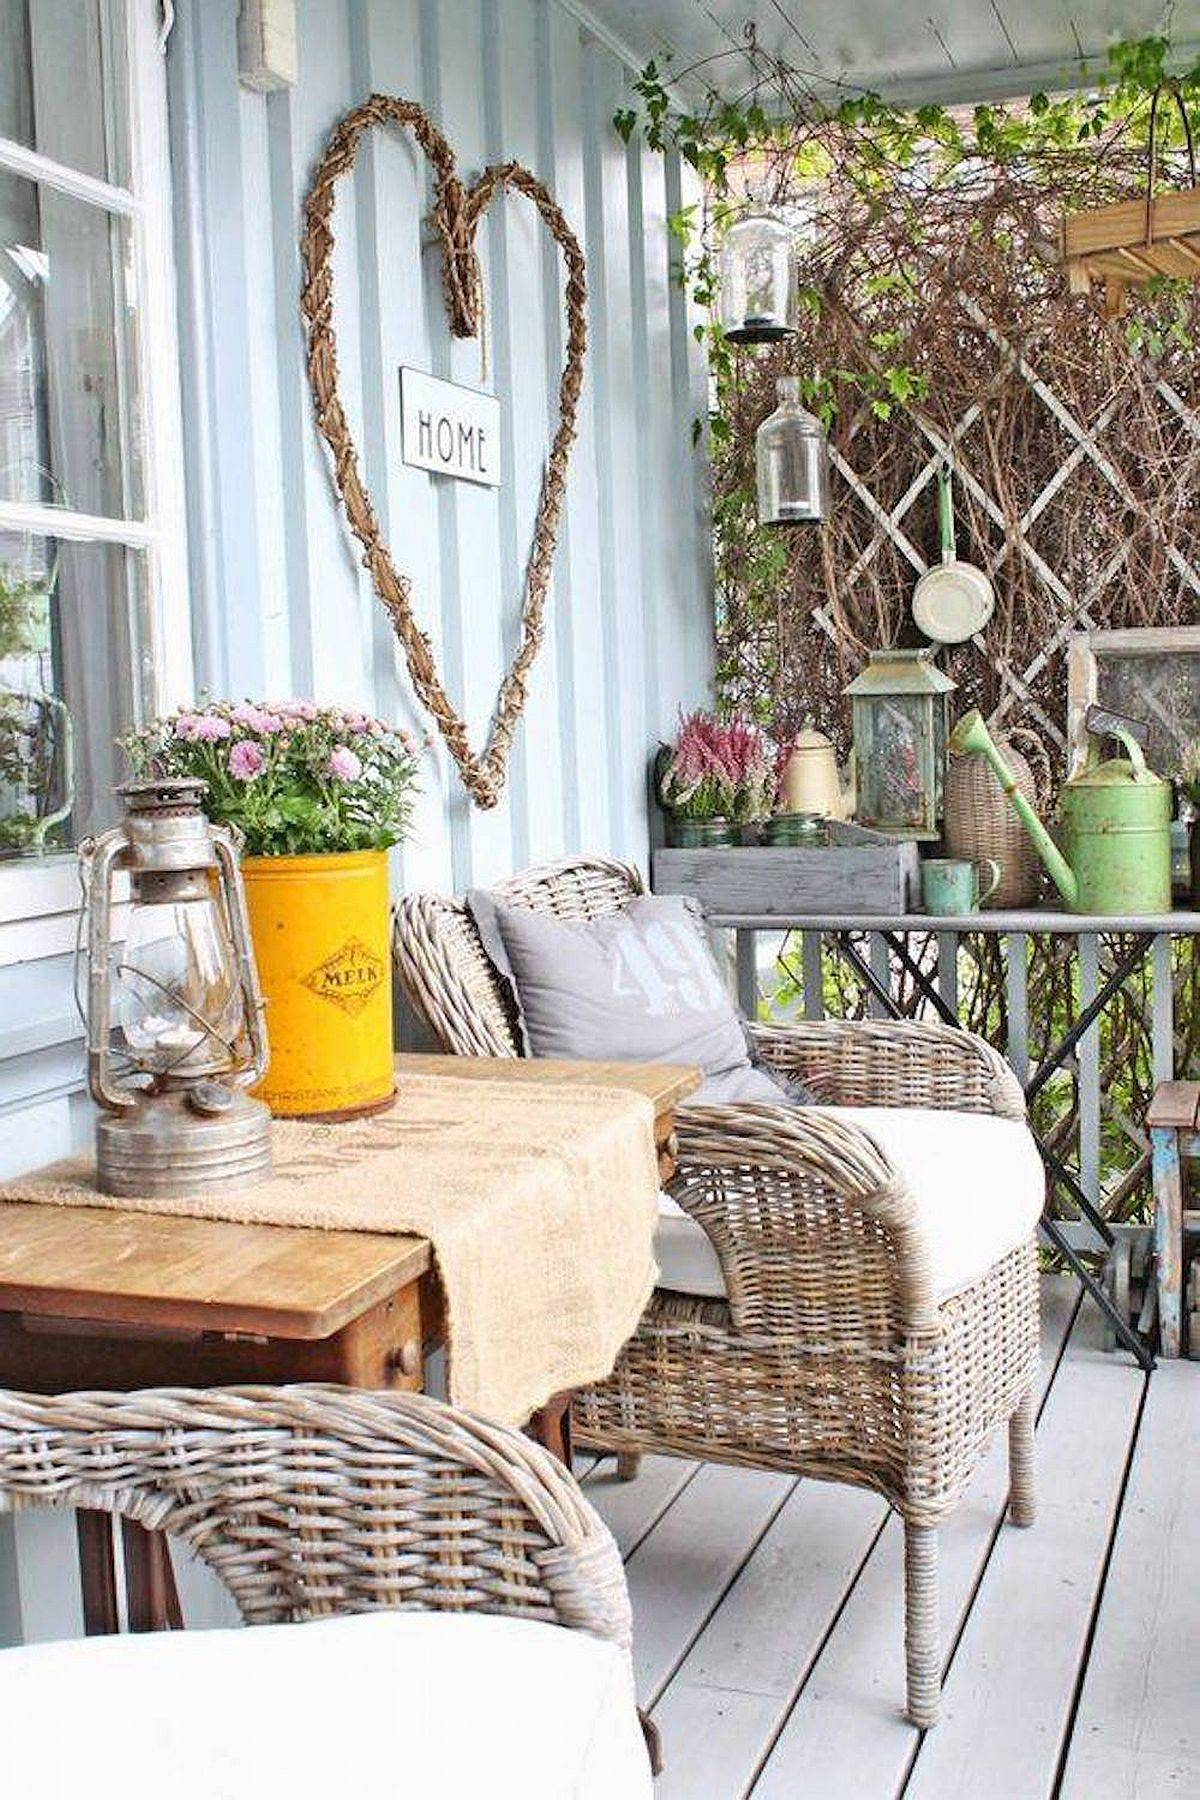 Small and modern shabby-chic style porch decorating ideas with naural goodness